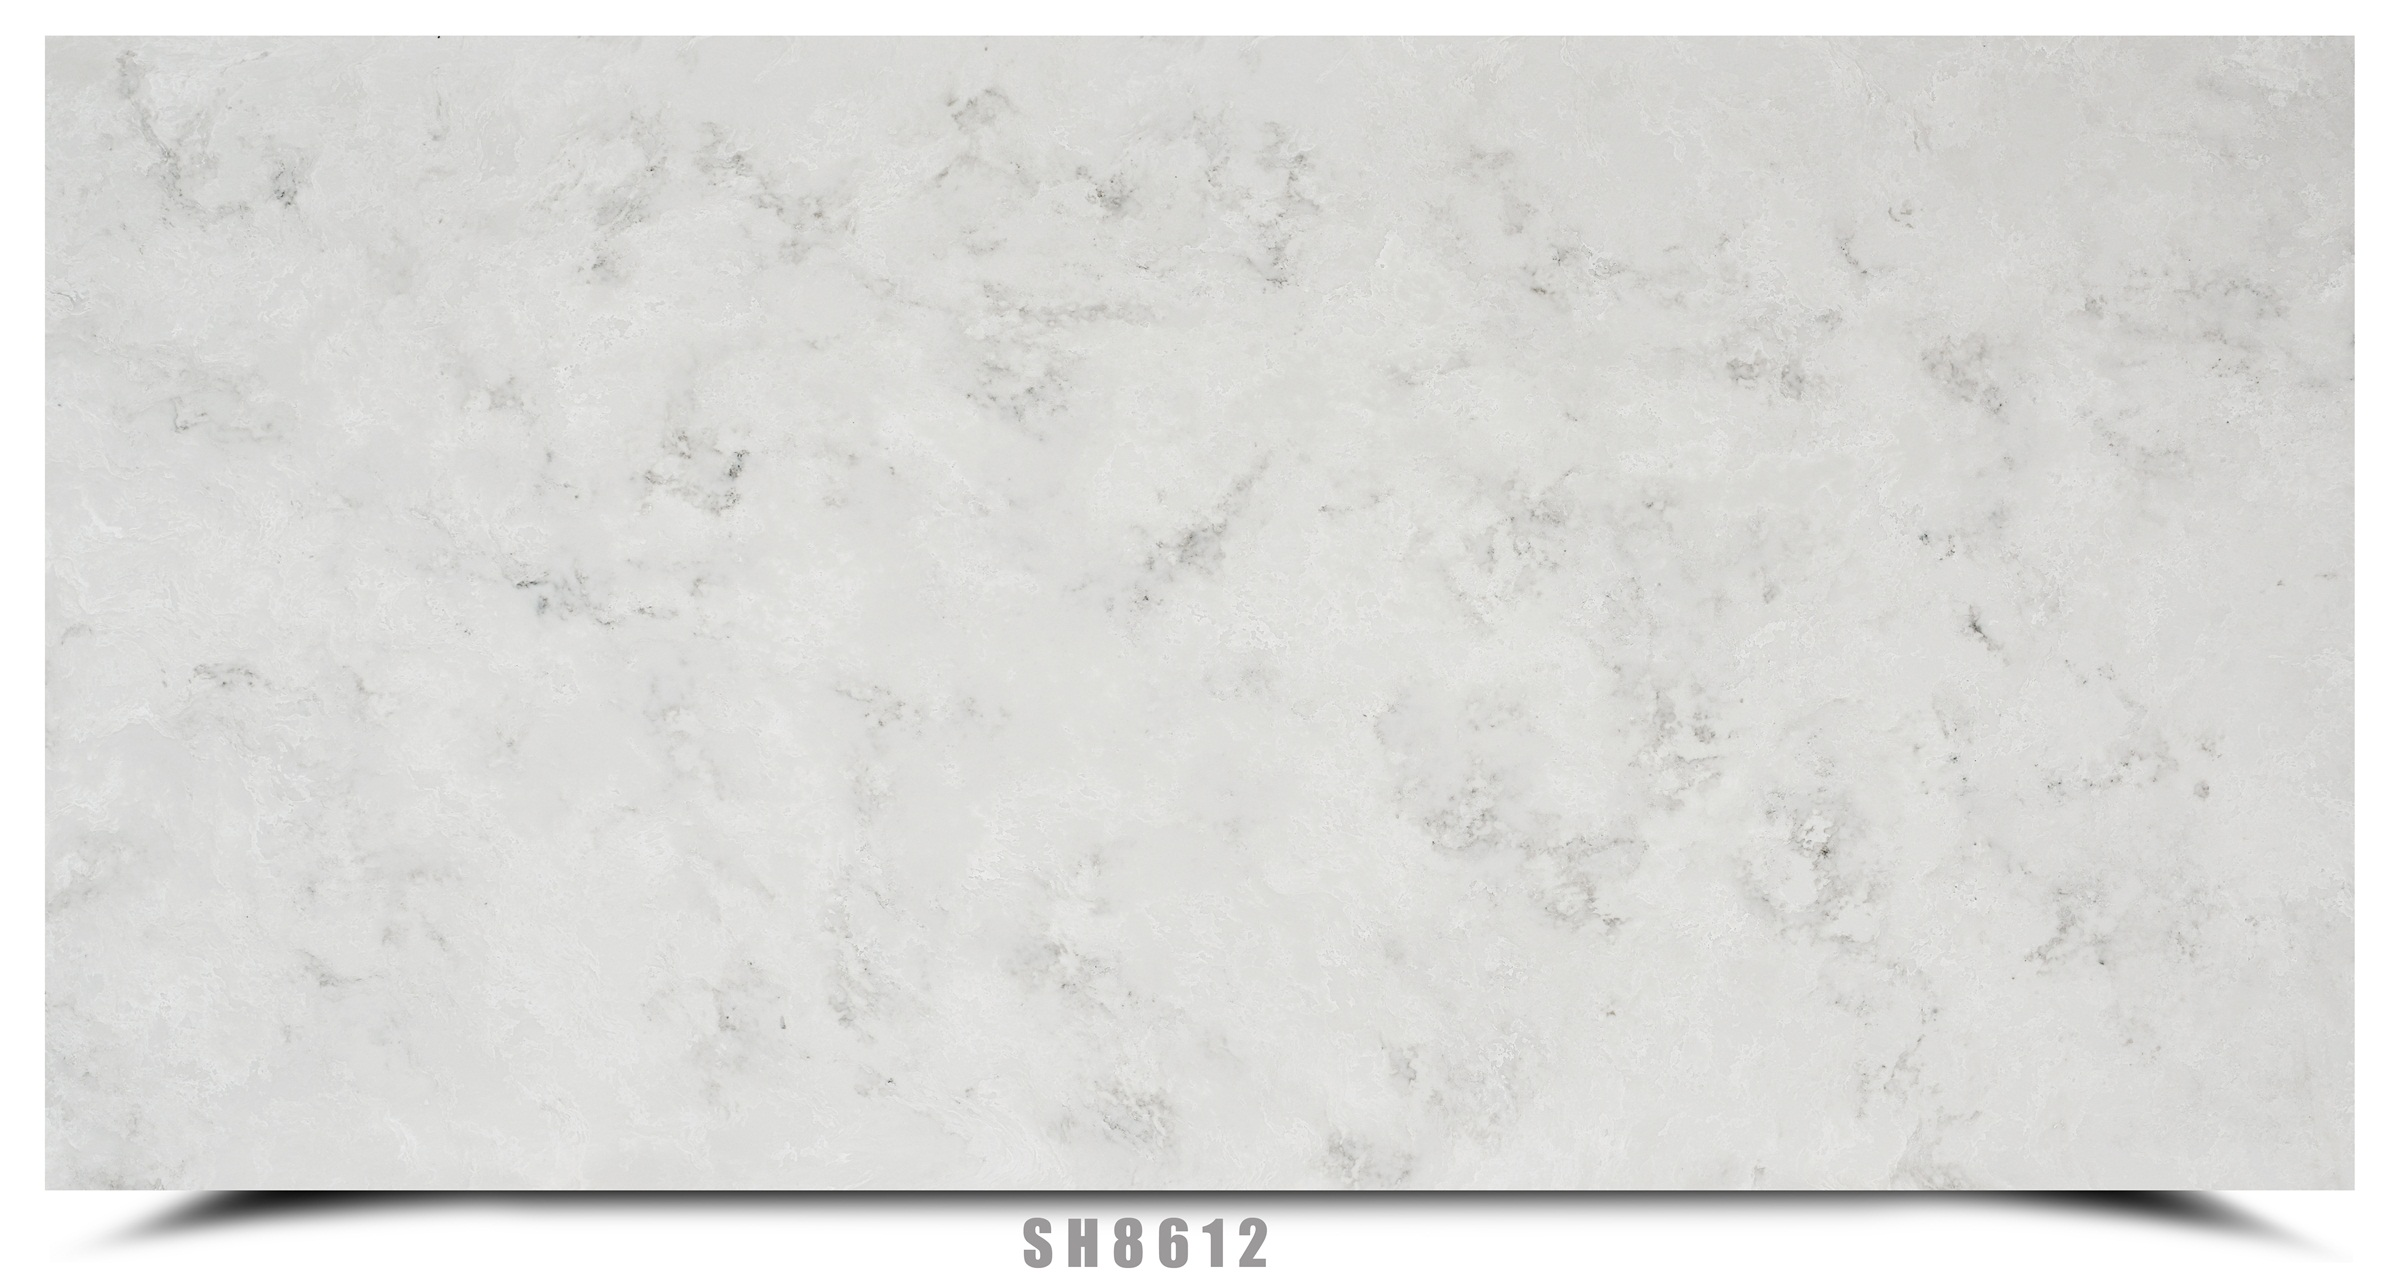 Engineering White Artificial Quartz Worktops Slab Featured Image